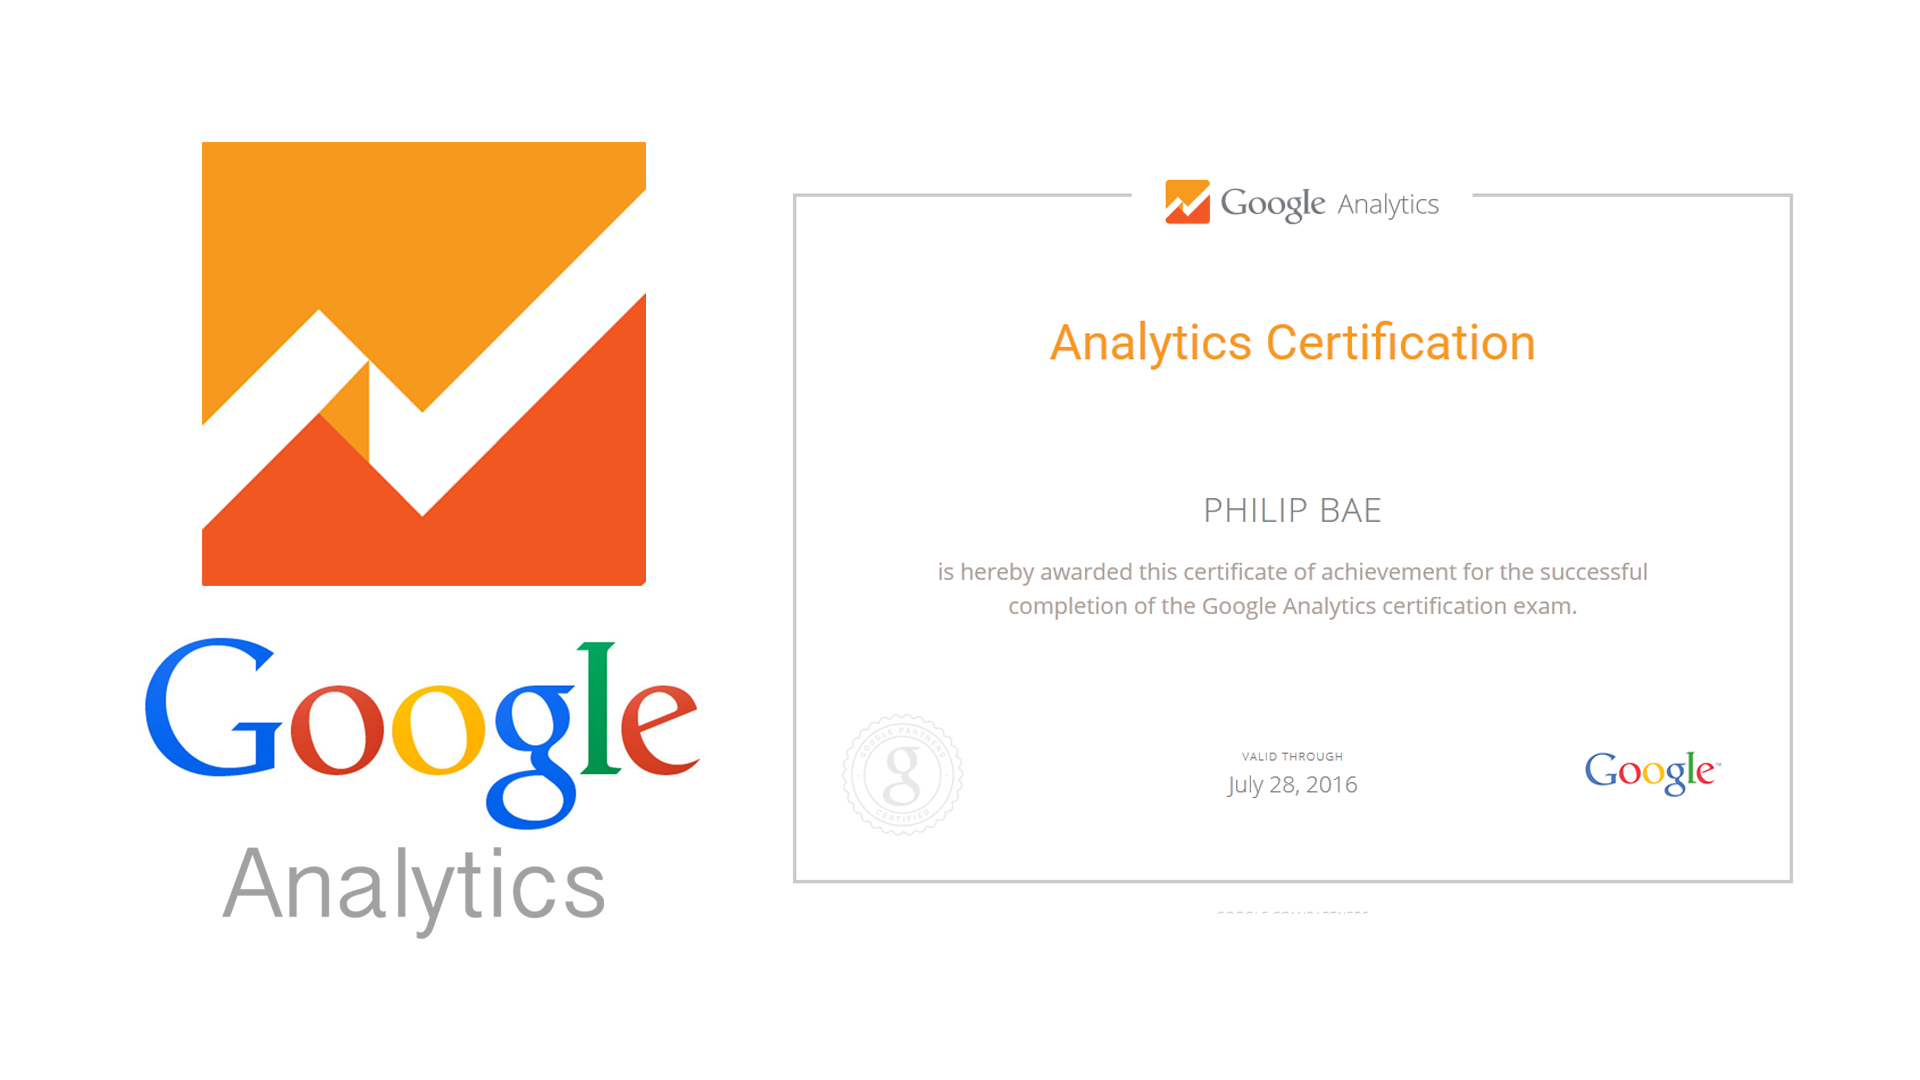 Best study guide to prepare for google adwords certification exam preparing for google analytics iq certification xflitez Image collections